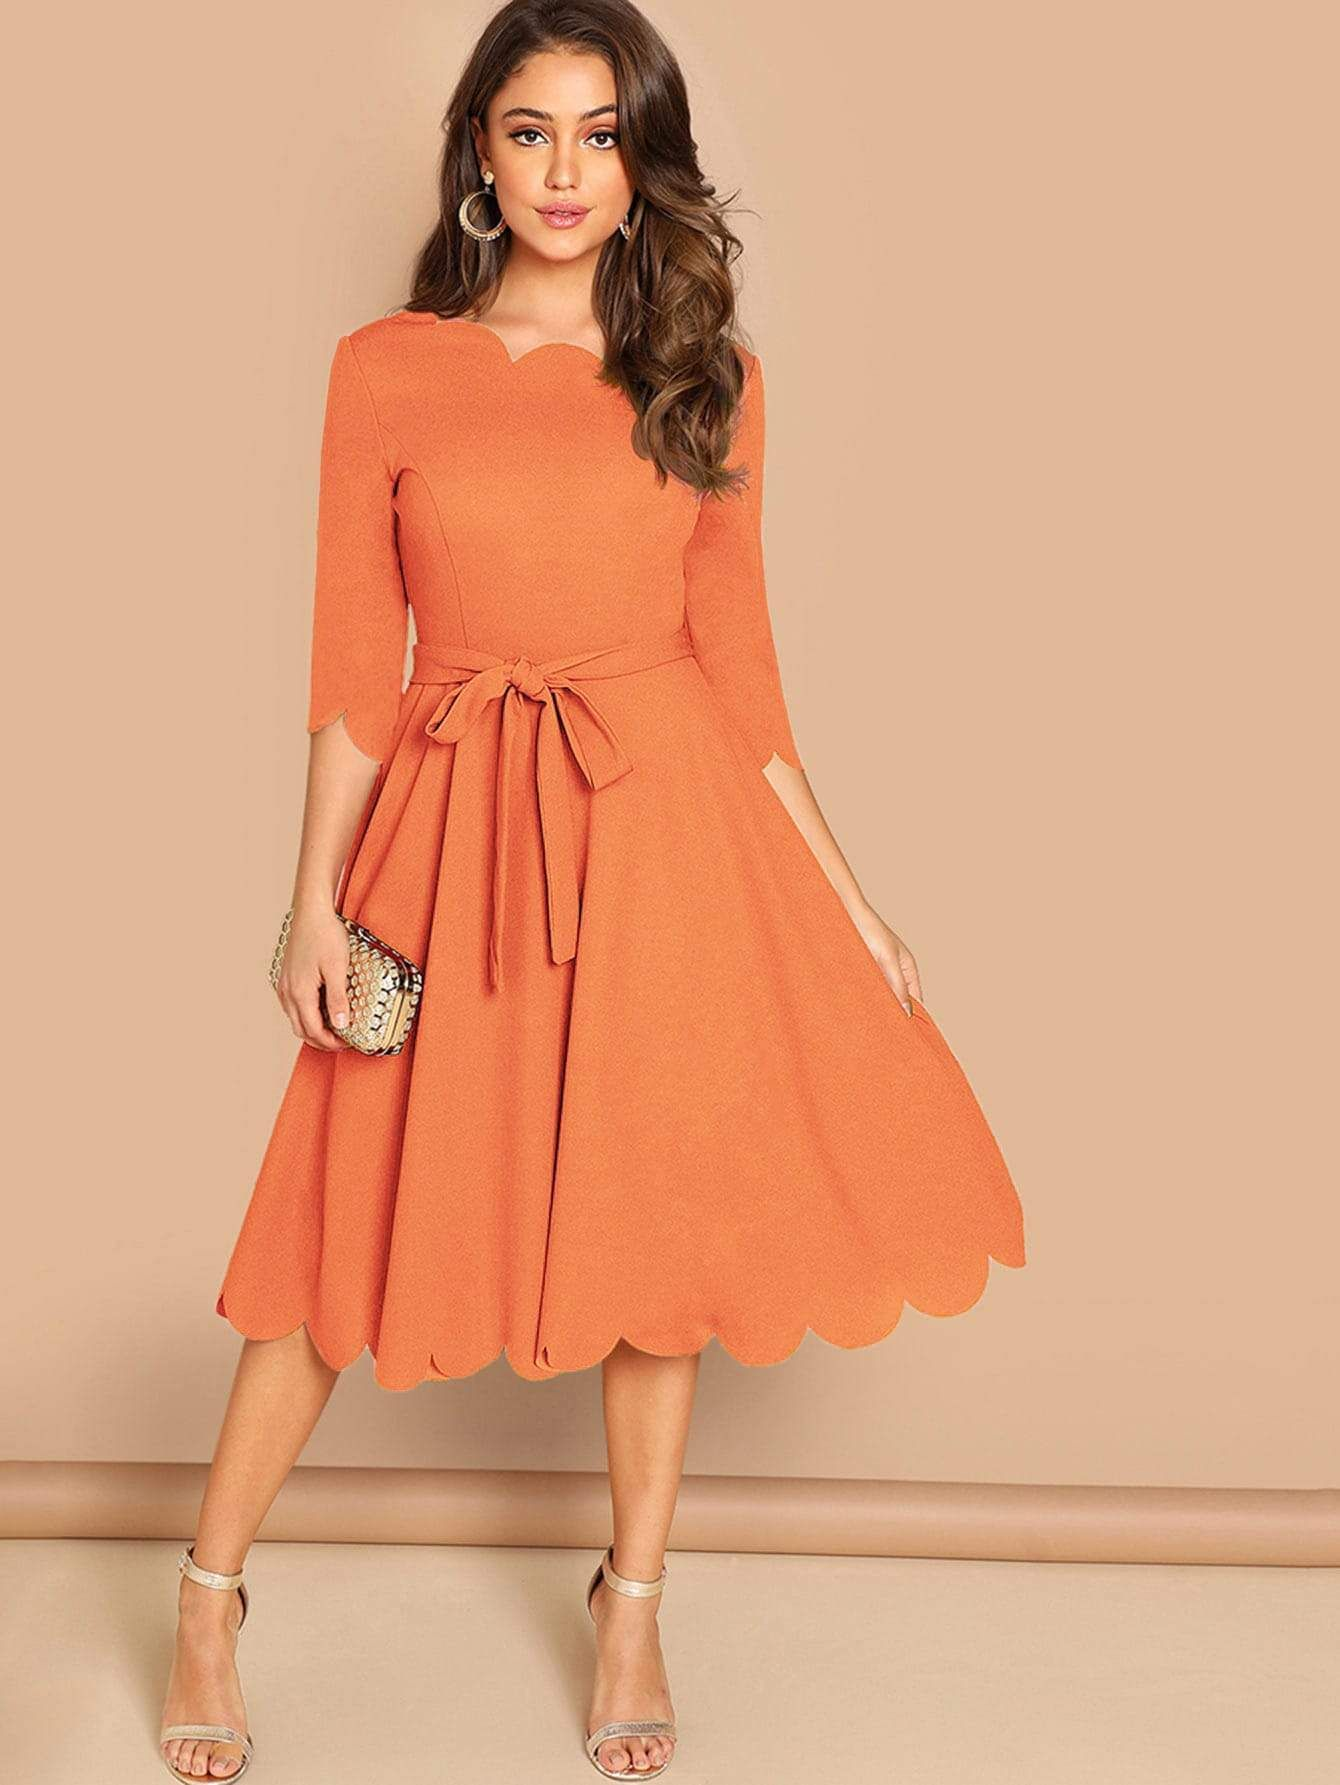 Round Neck 3//4 Sleeve Scallop Belted A Line Fit and Flare Dress Casual Work